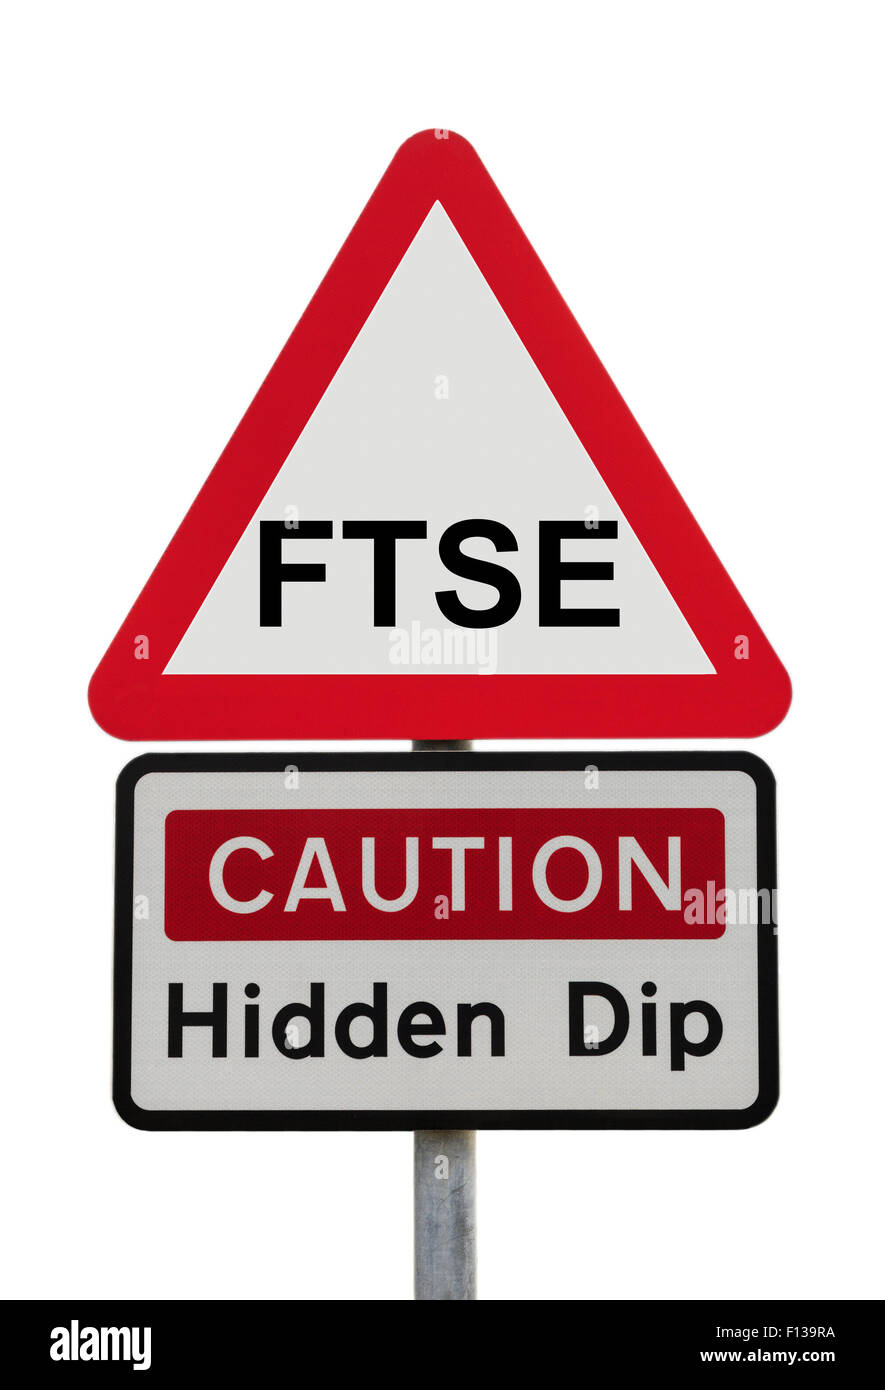 Triangle rouge signe de Danger Avertissement Attention Dip cachés avec FTSE 100 pour illustrer la récession Photo Stock